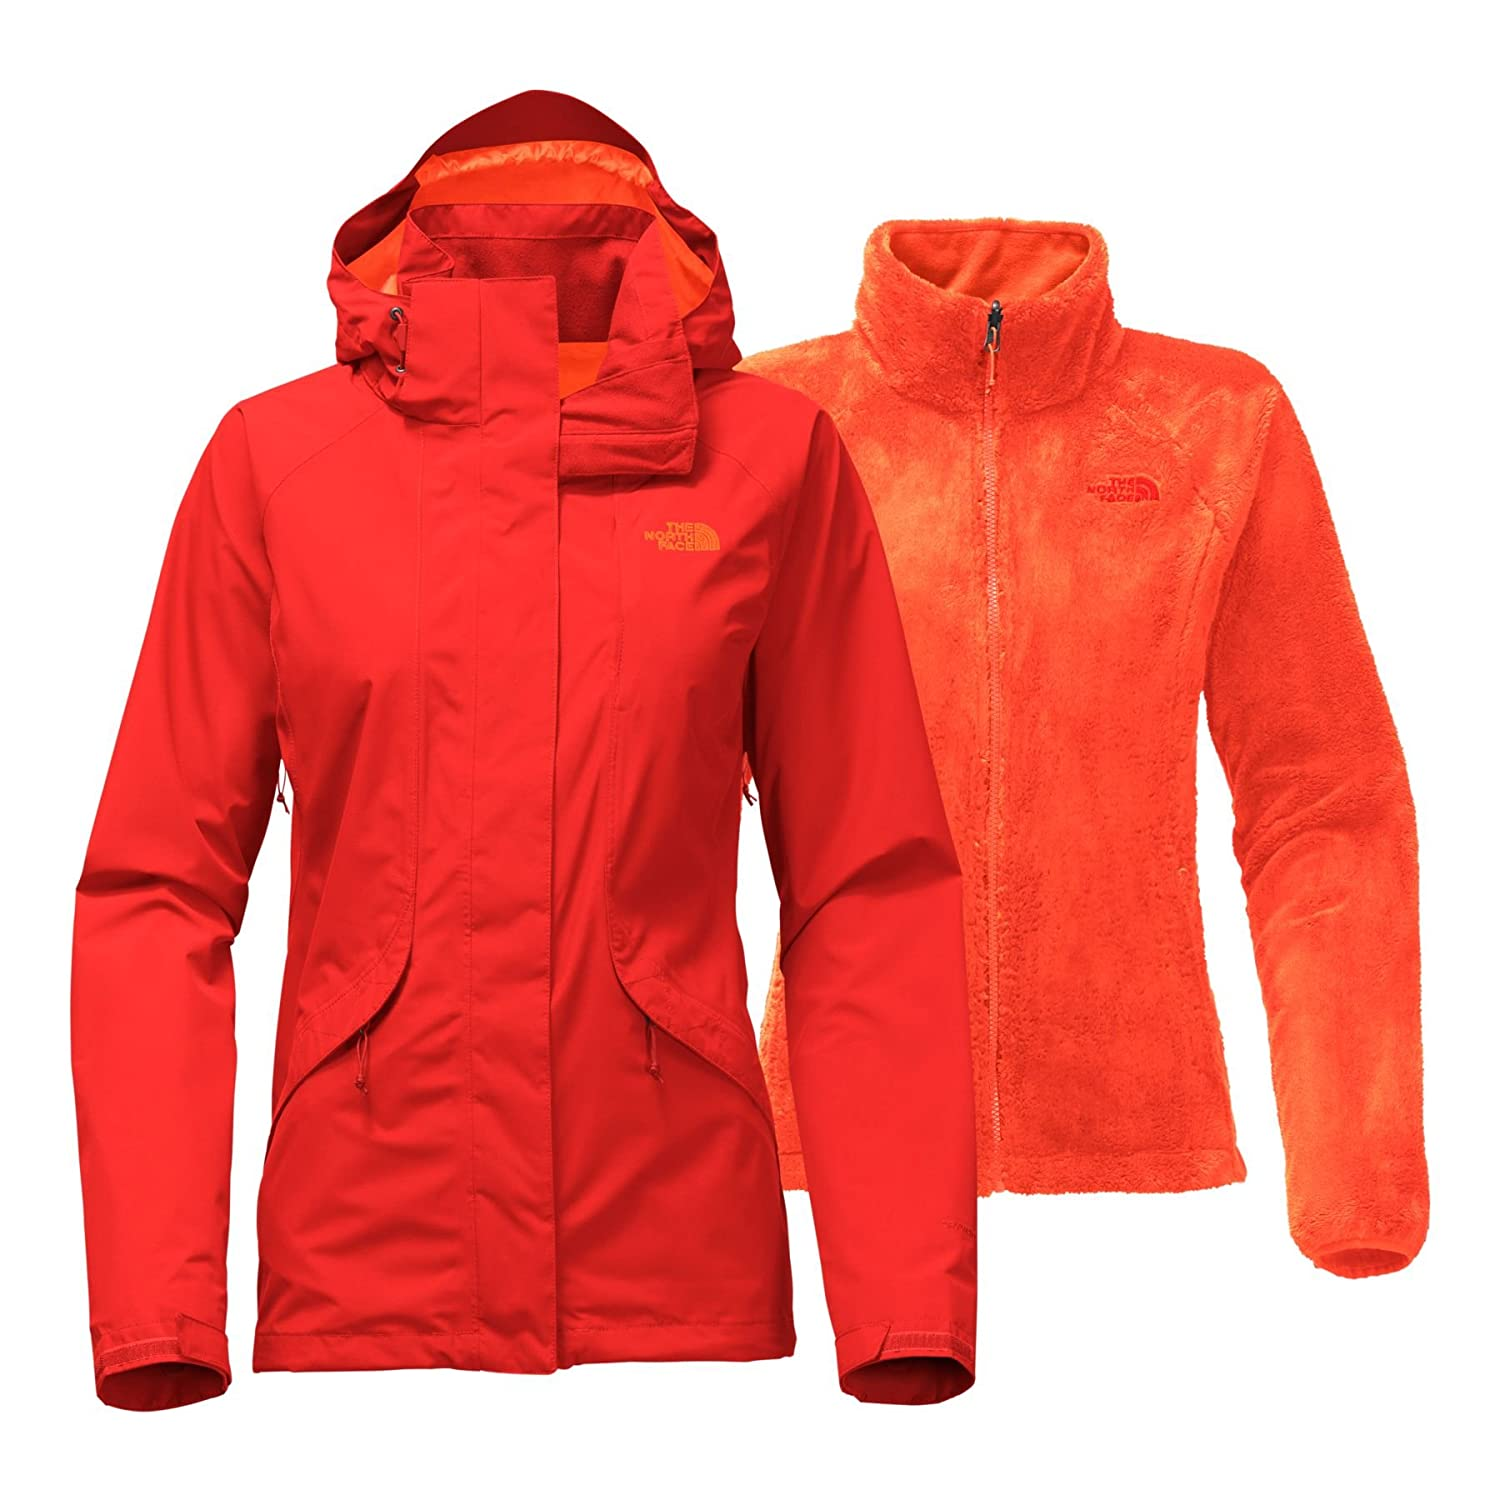 0519f7c54d3a6 Amazon.com  The North Face Women s Boundary Triclimate Jacket  Clothing